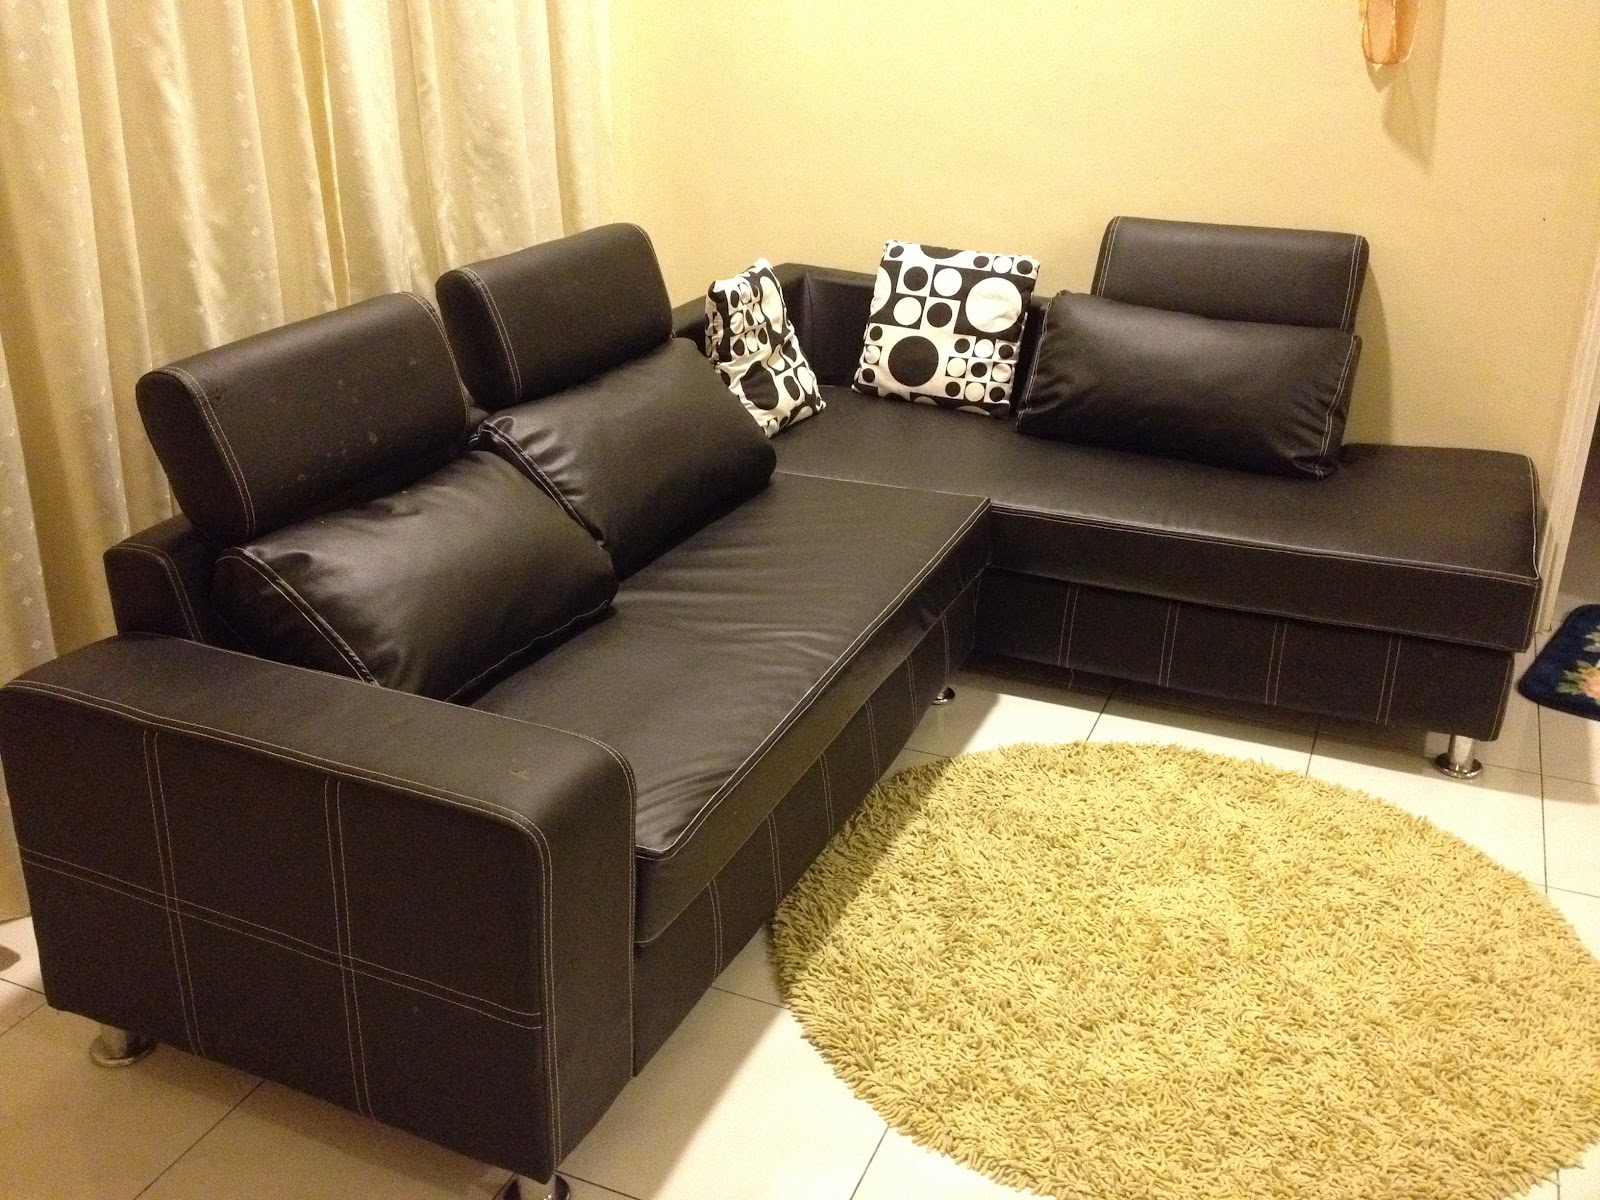 E Used Item For Sale Used L Shape Leather Sofa For Sale Sold Out April 2012